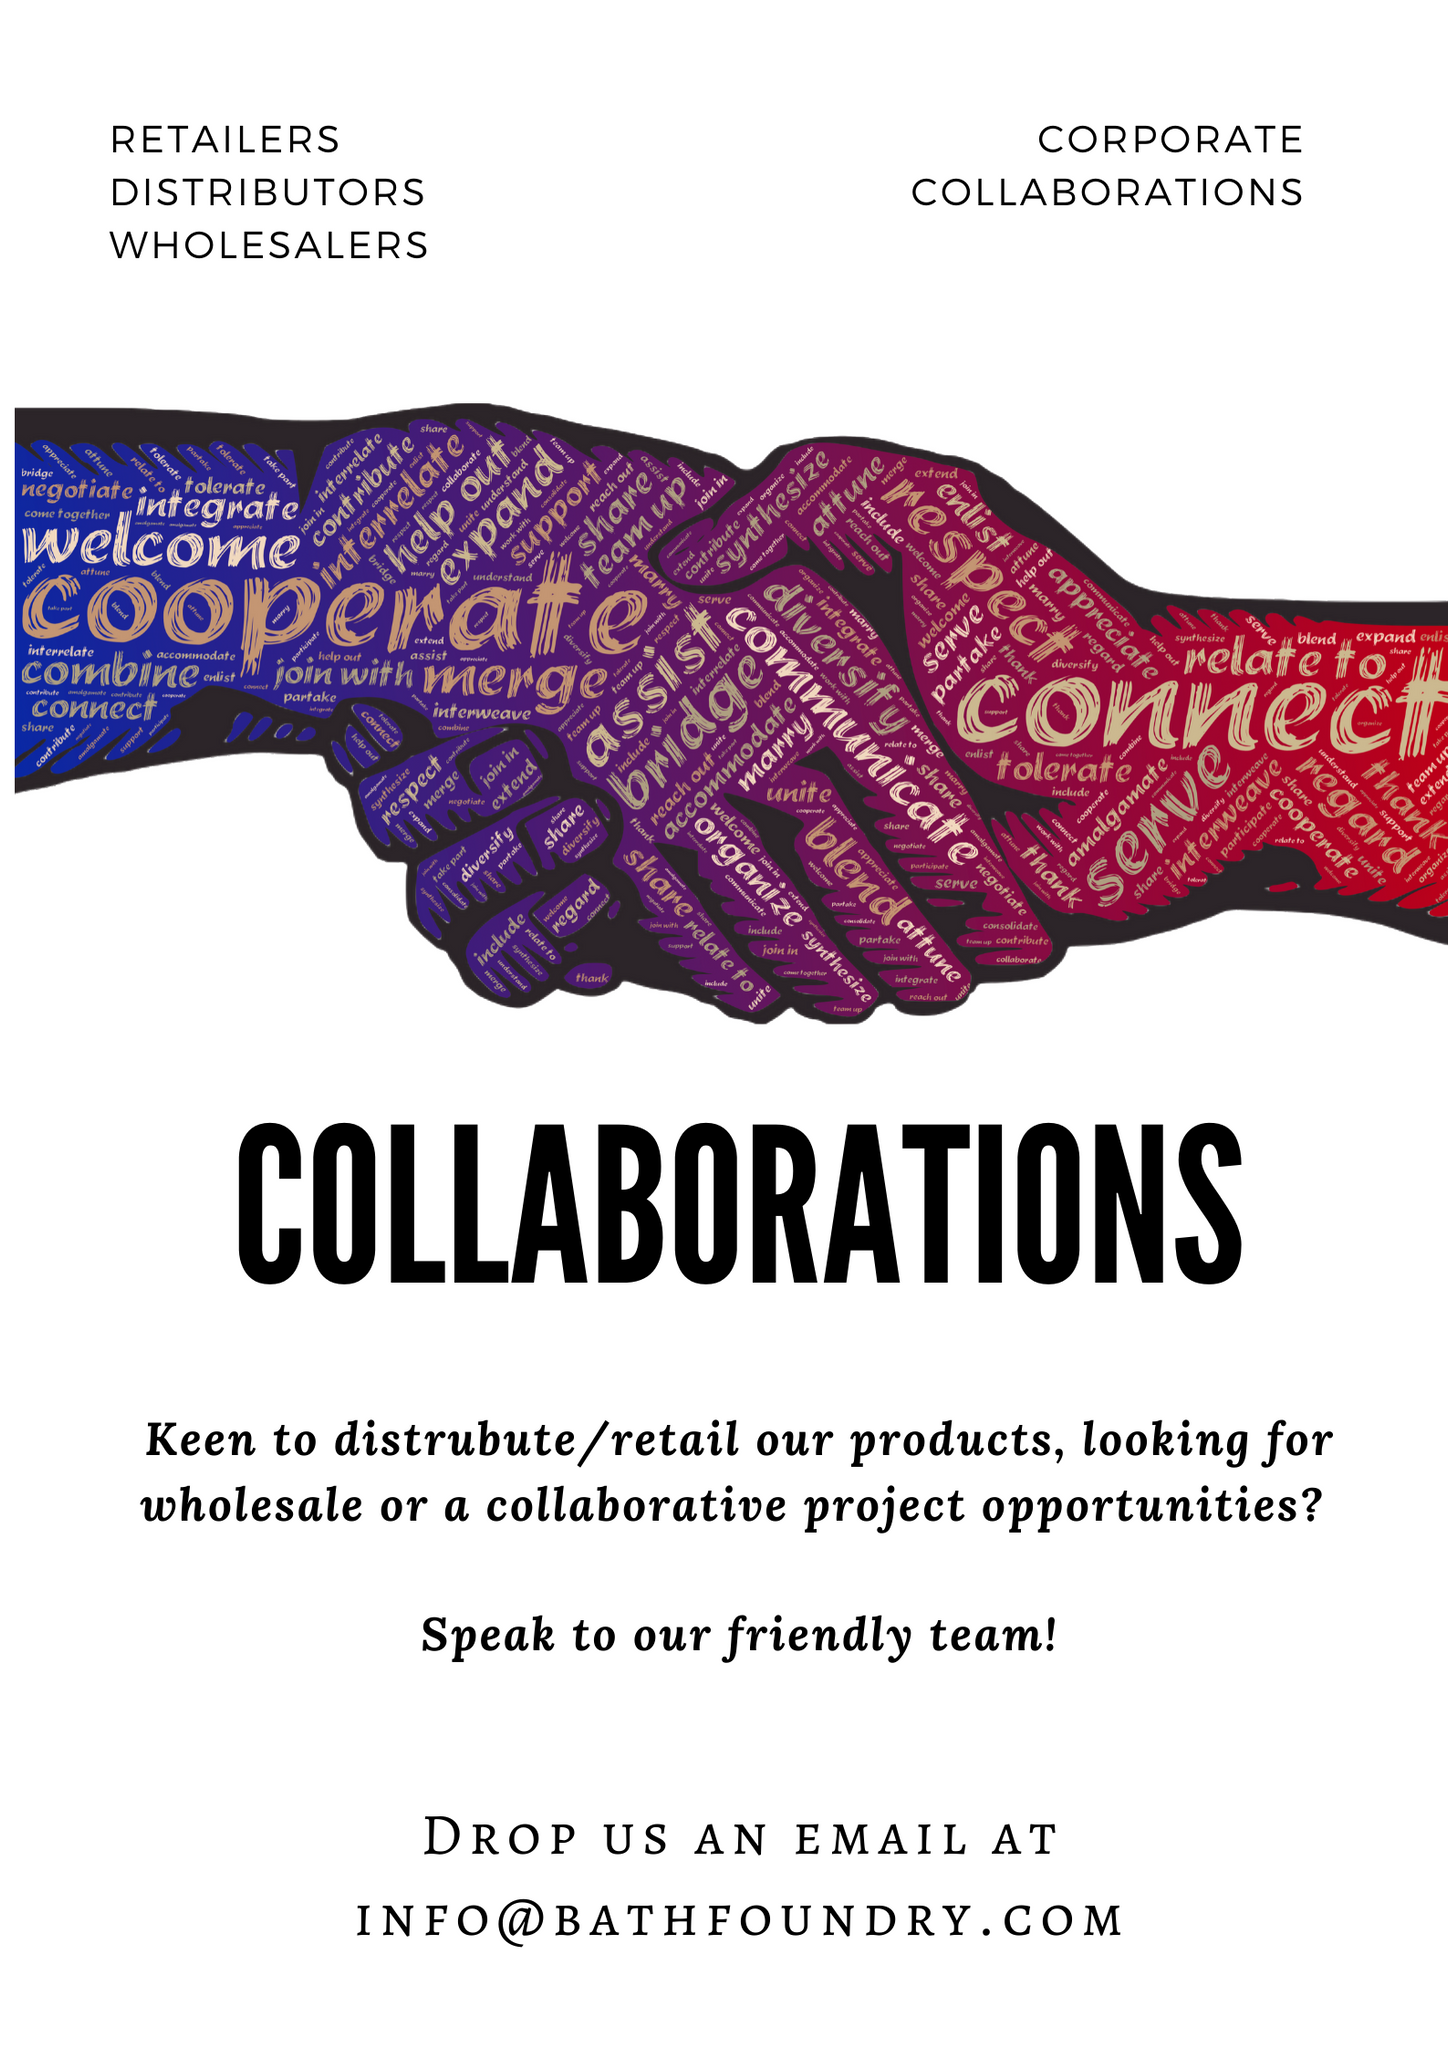 collaborations; retailers; distributors; wholesalers